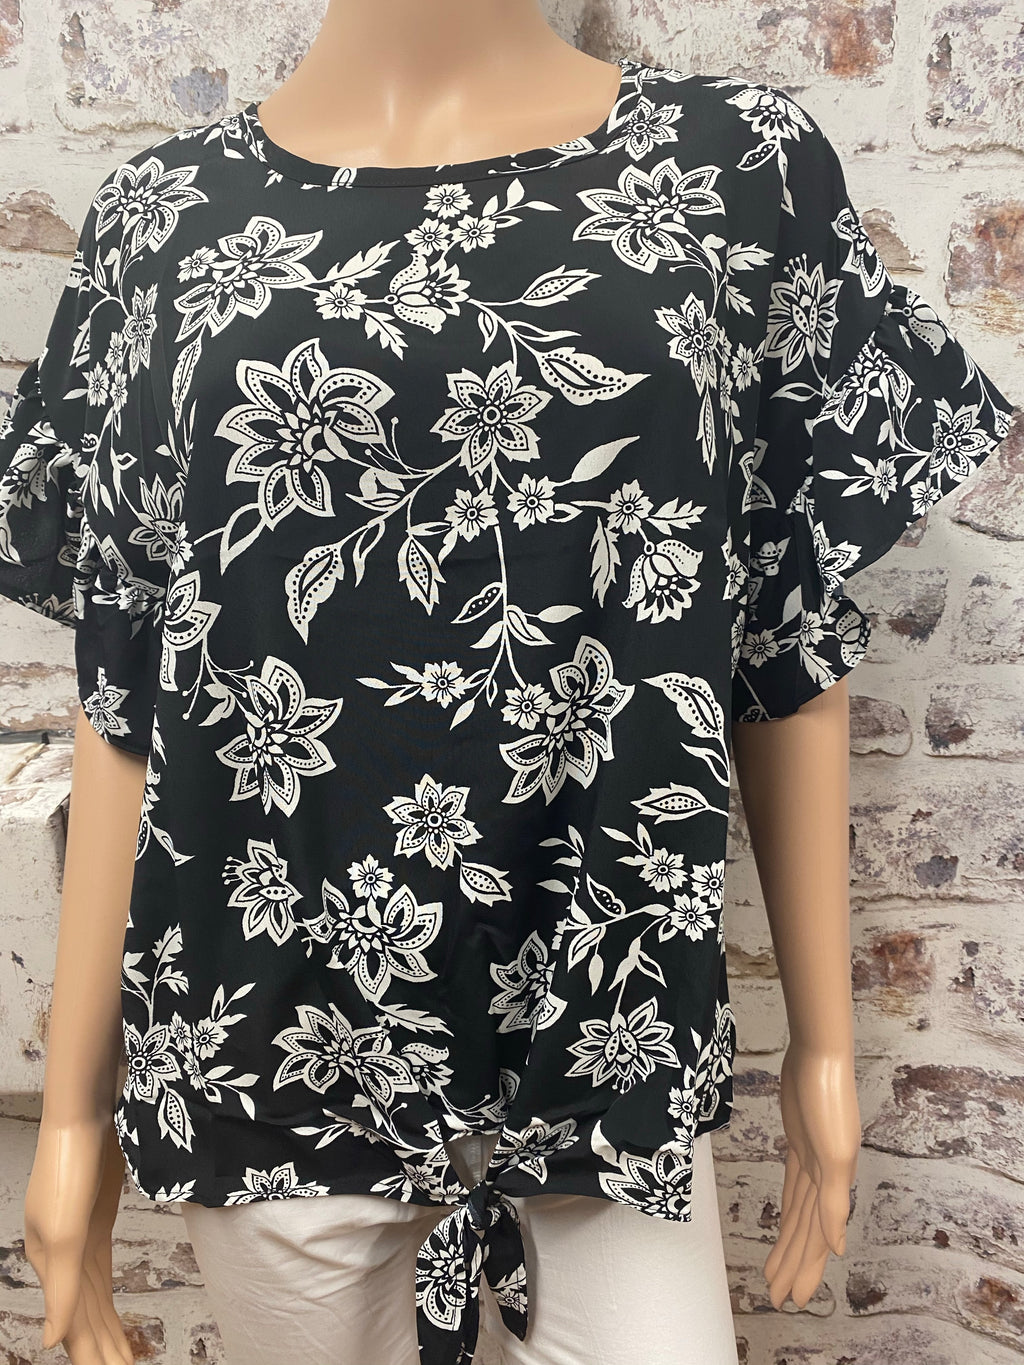 Black and White Floral  Ruffled Sleeve Top with Knotted Accent